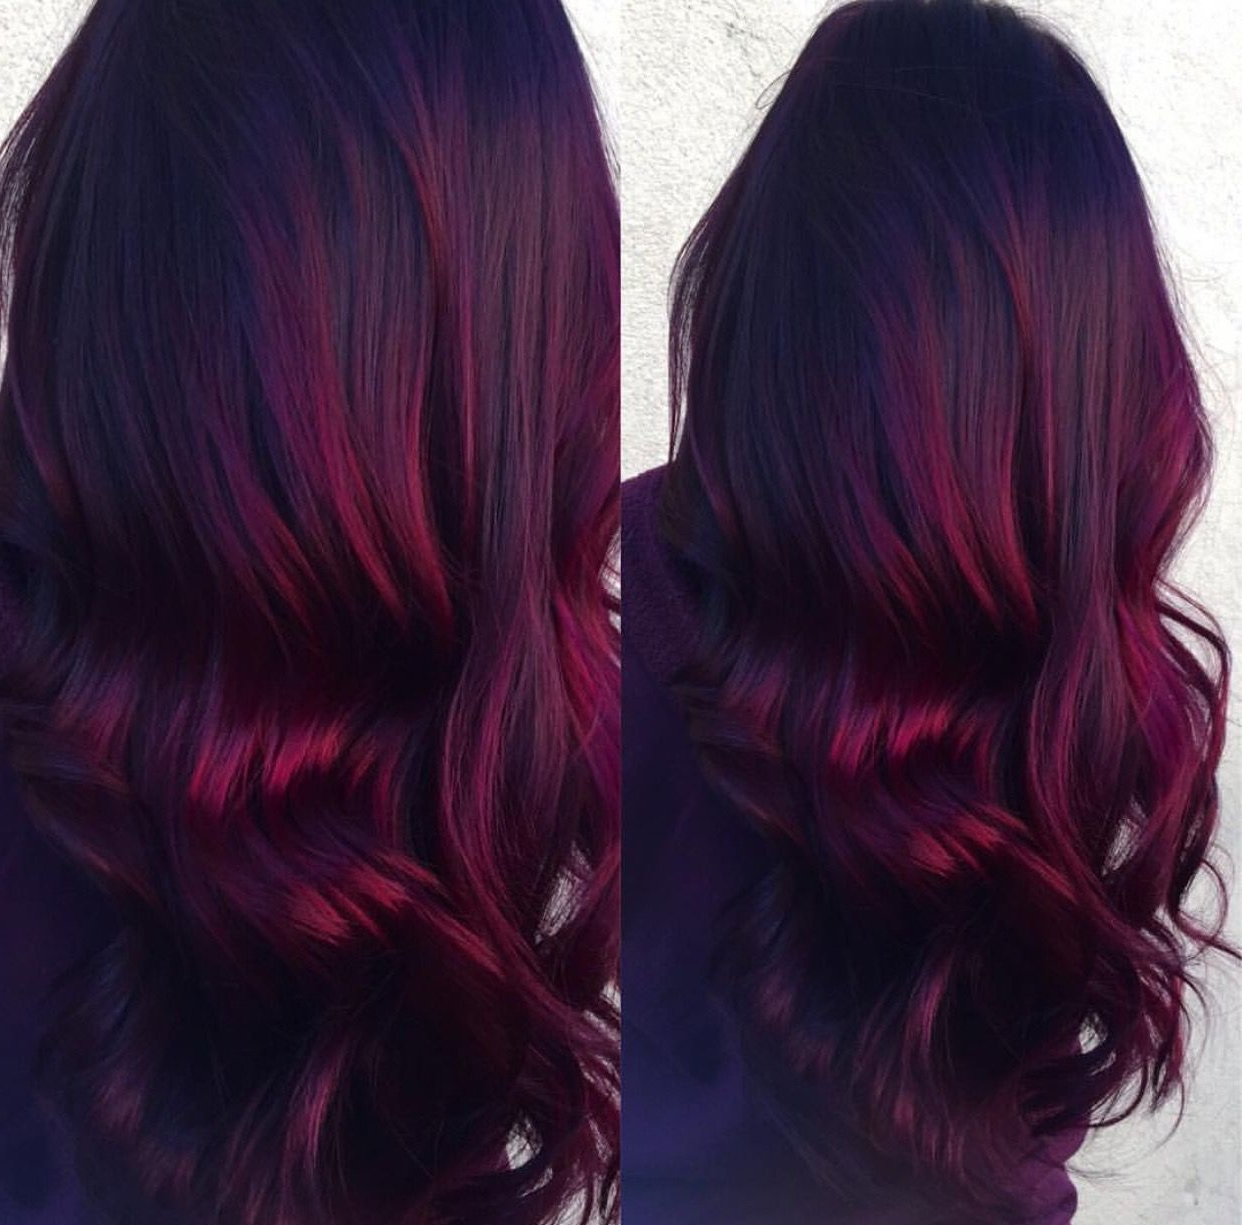 Red Velvet Balayage– Dark Roots With Vibrant Burgundy Ends In Vibrant Burgundy Shag Haircuts (View 17 of 20)